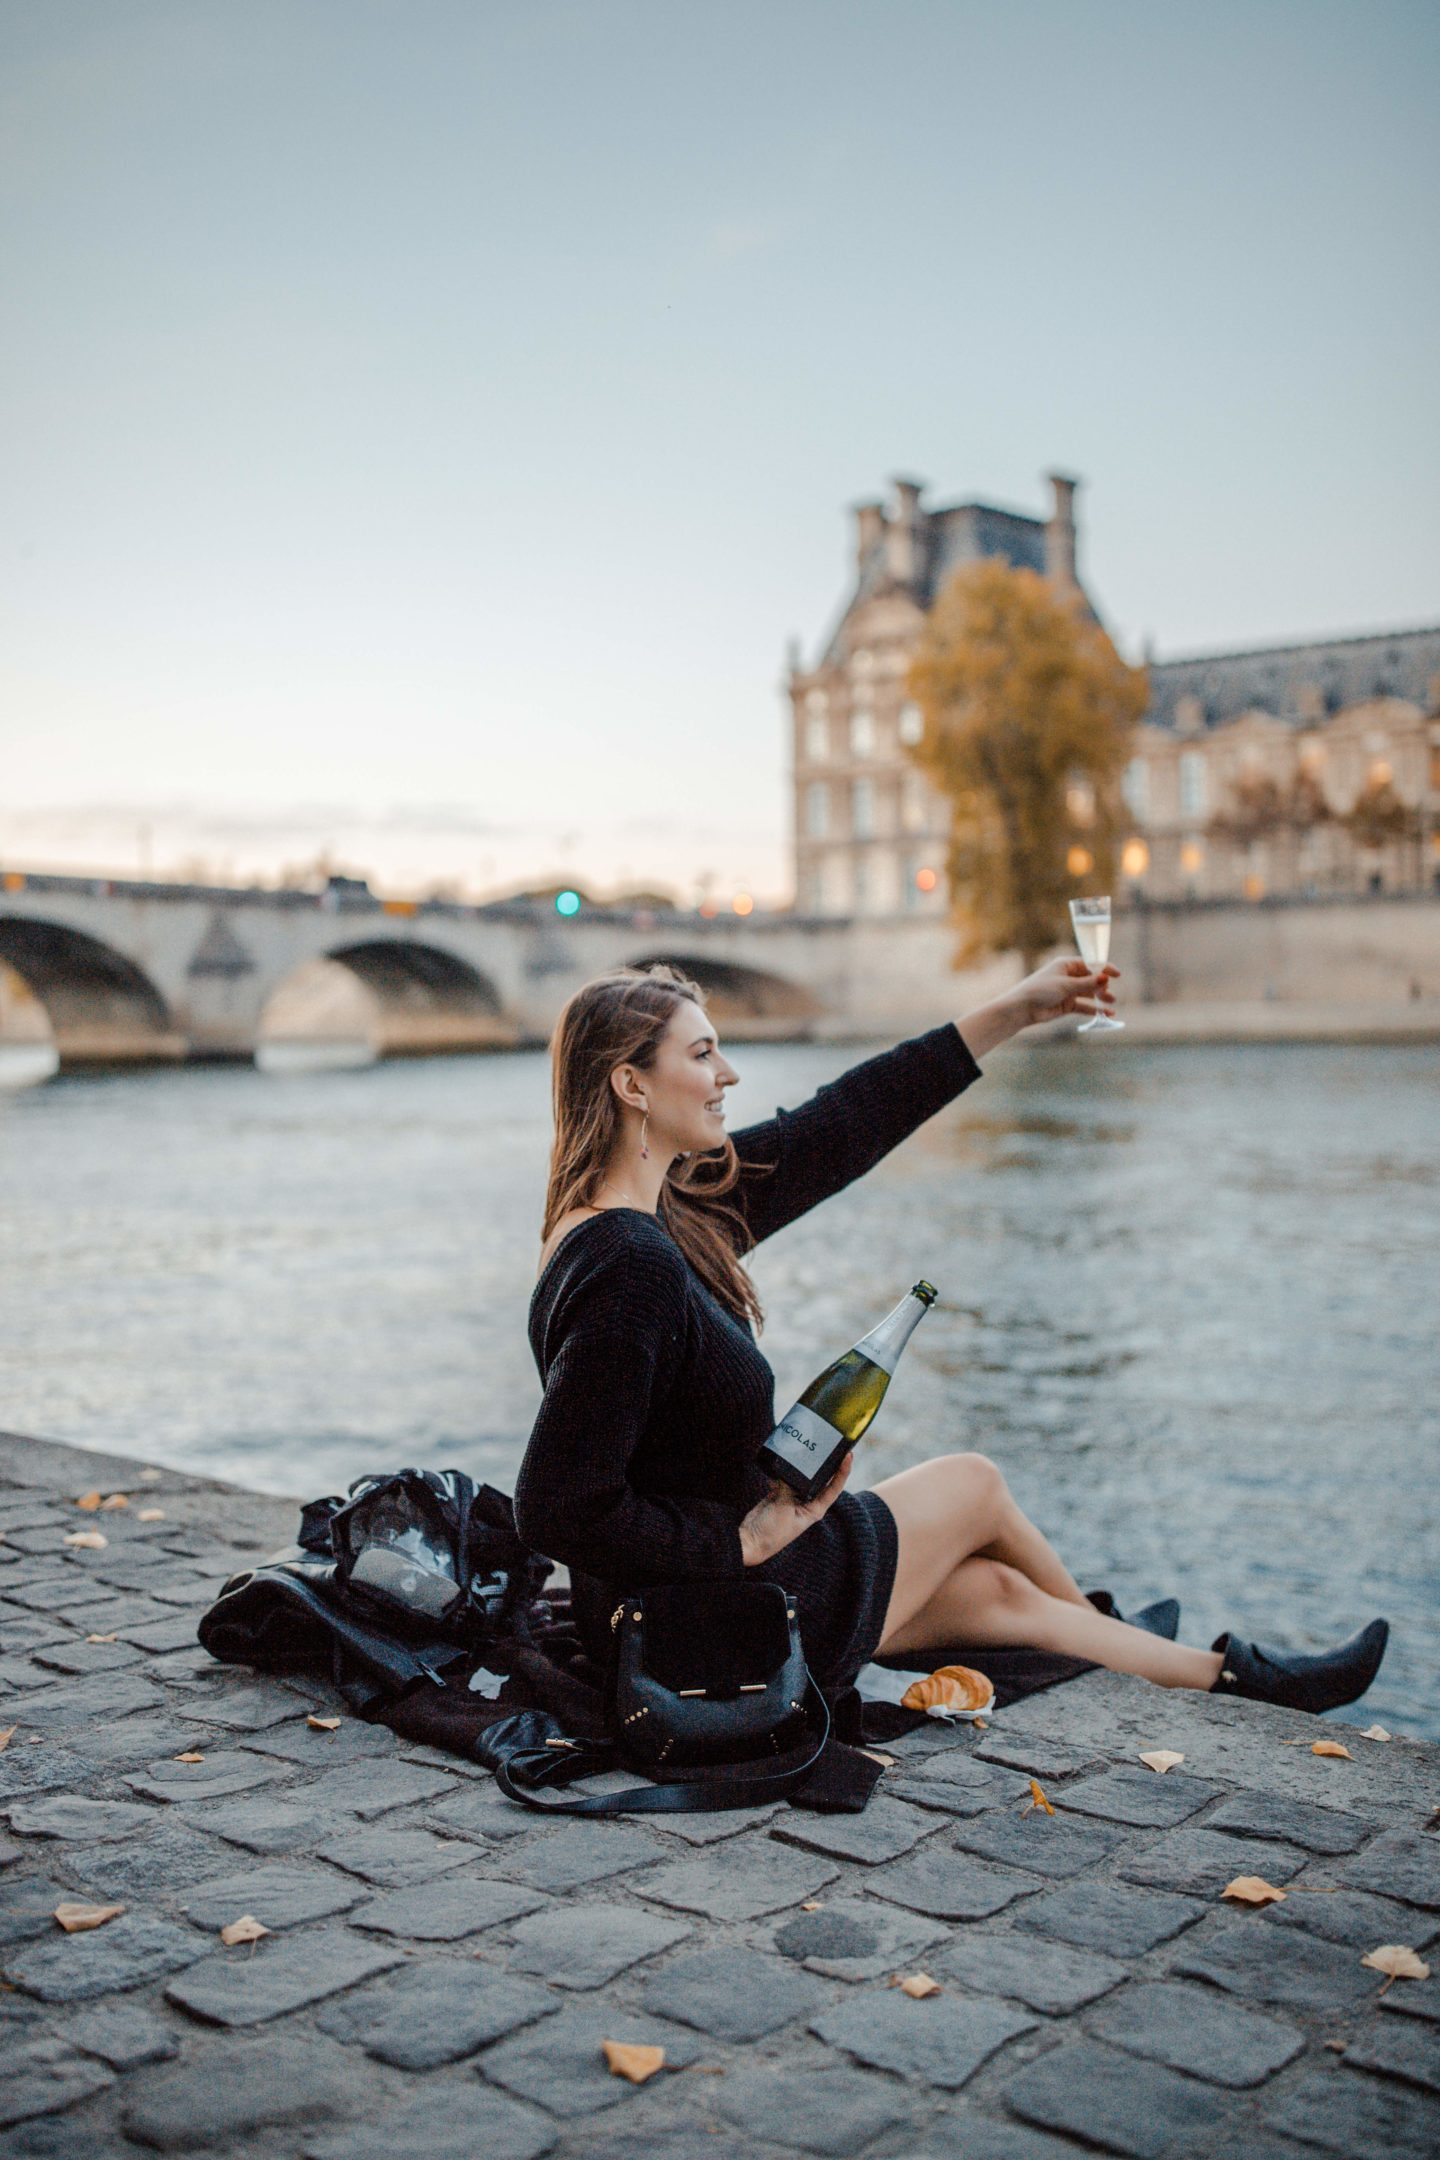 Blogger's travel guide to Paris | Top things to do and see in Paris France | Paris Photography Inspiration | Dana Berez Travel Guide Seine River Paris Photogprahy